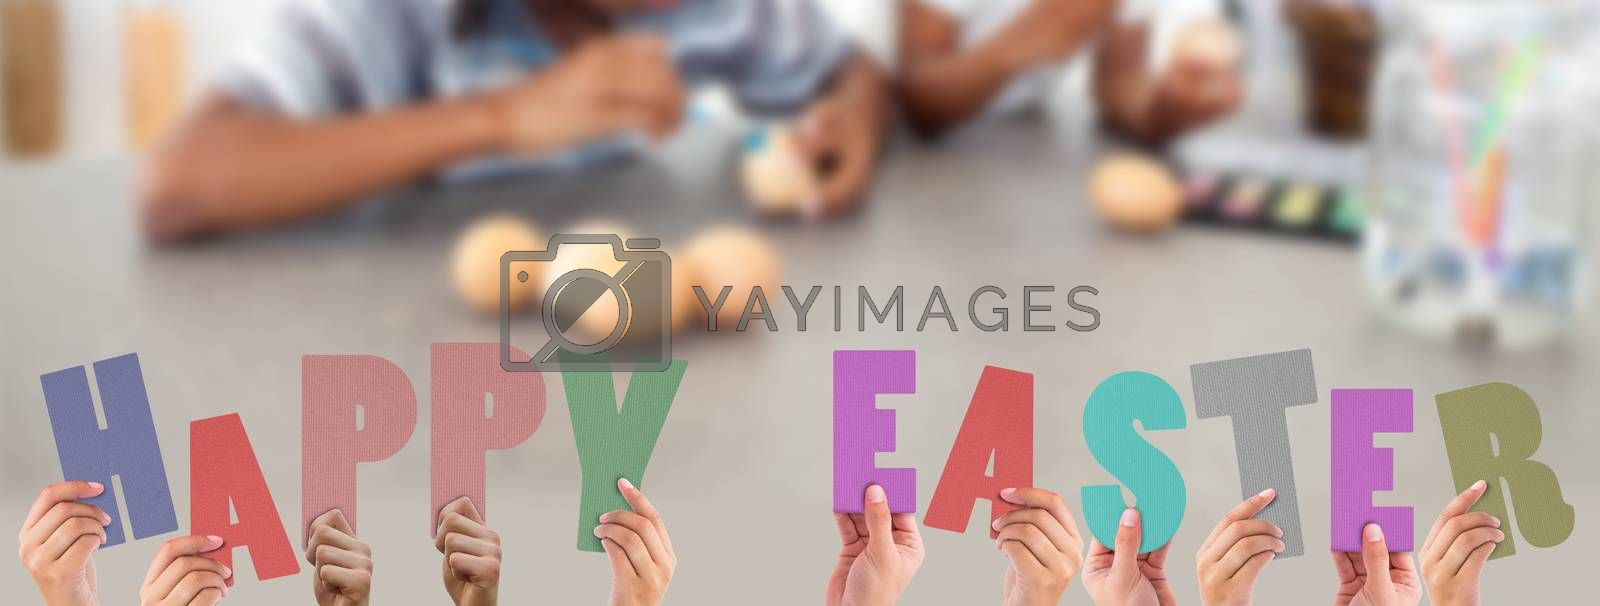 Royalty free image of Composite image of hands holding up happy easter by Wavebreakmedia